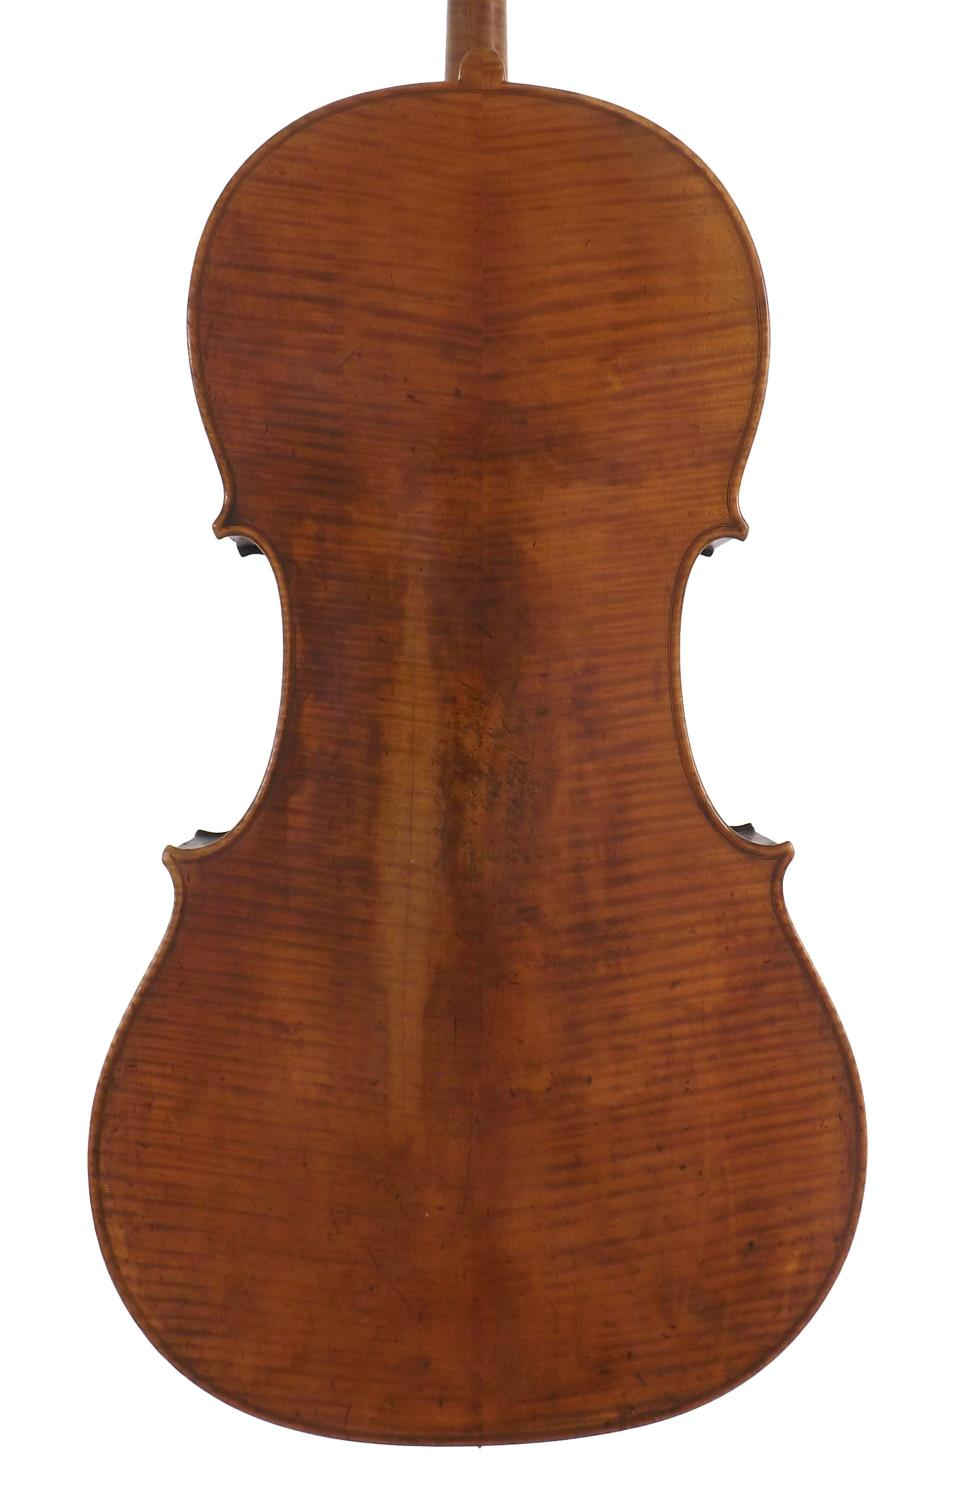 Good 19th century German violoncello labelled Louis Noebe...Hamburg and inscribed in ink on the - Image 2 of 3